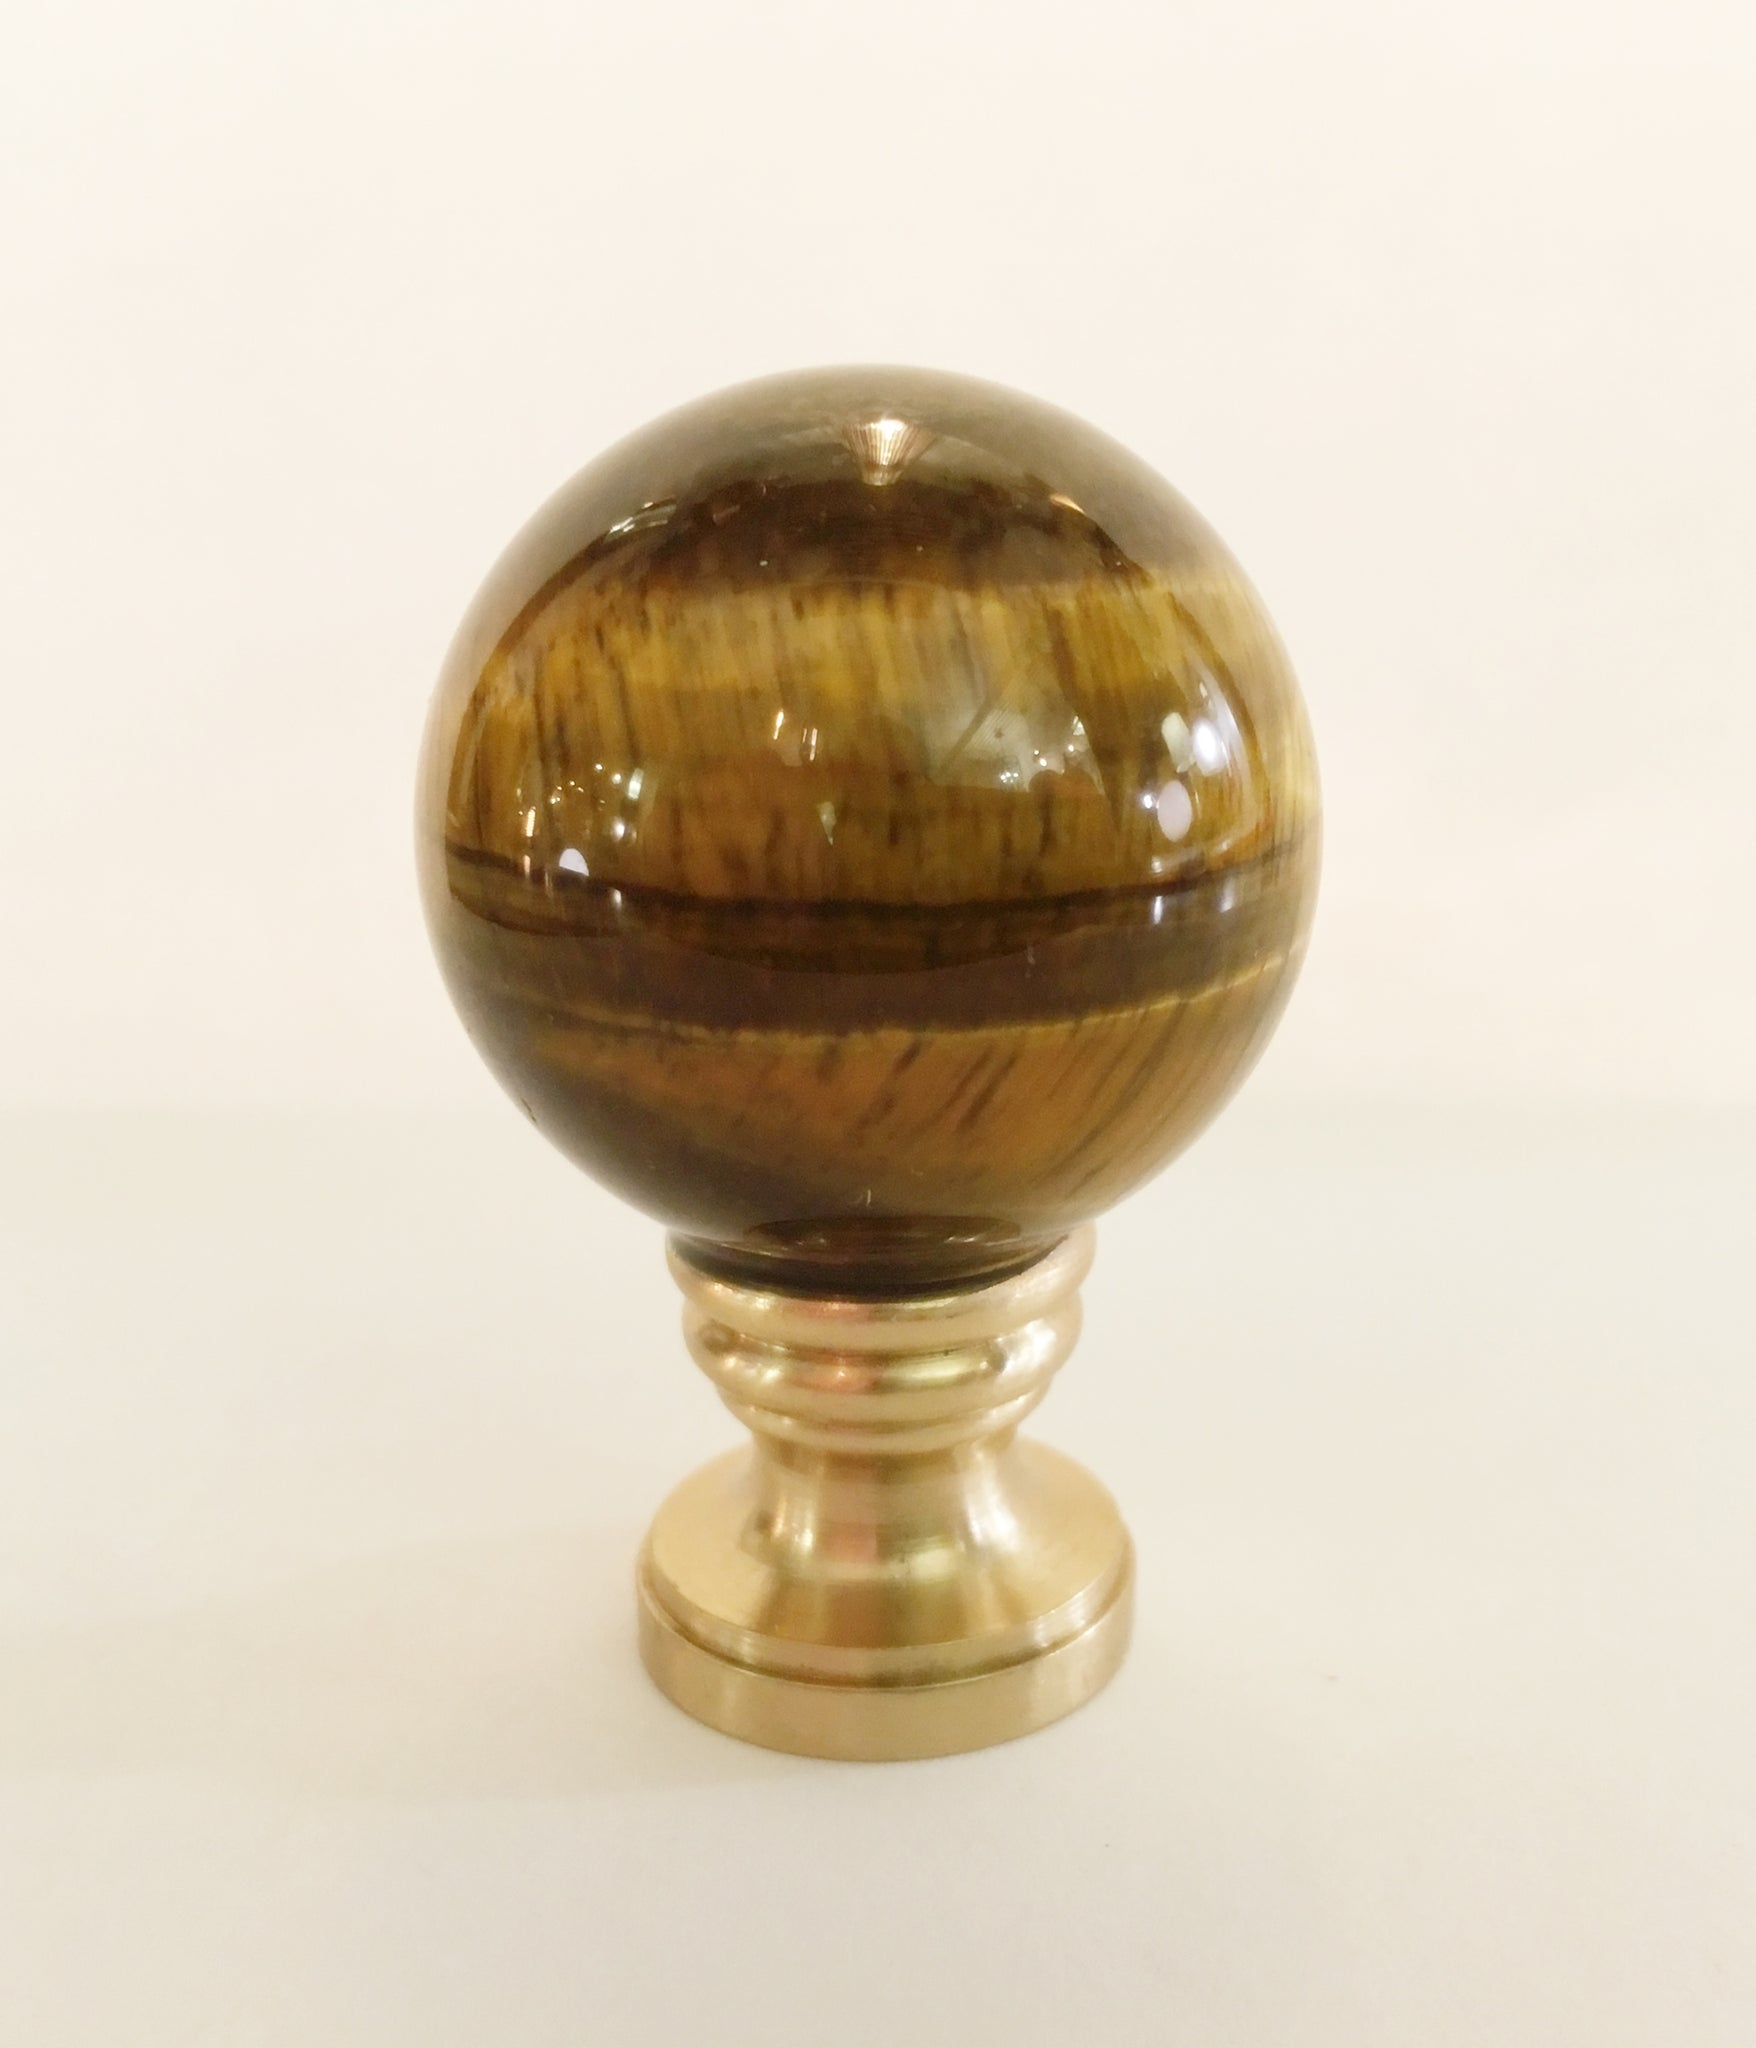 NEW GENUINE FOSSIL  STONE  SPHERE  ELECTRIC  LIGHTING  LAMP  SHADE  FINIAL